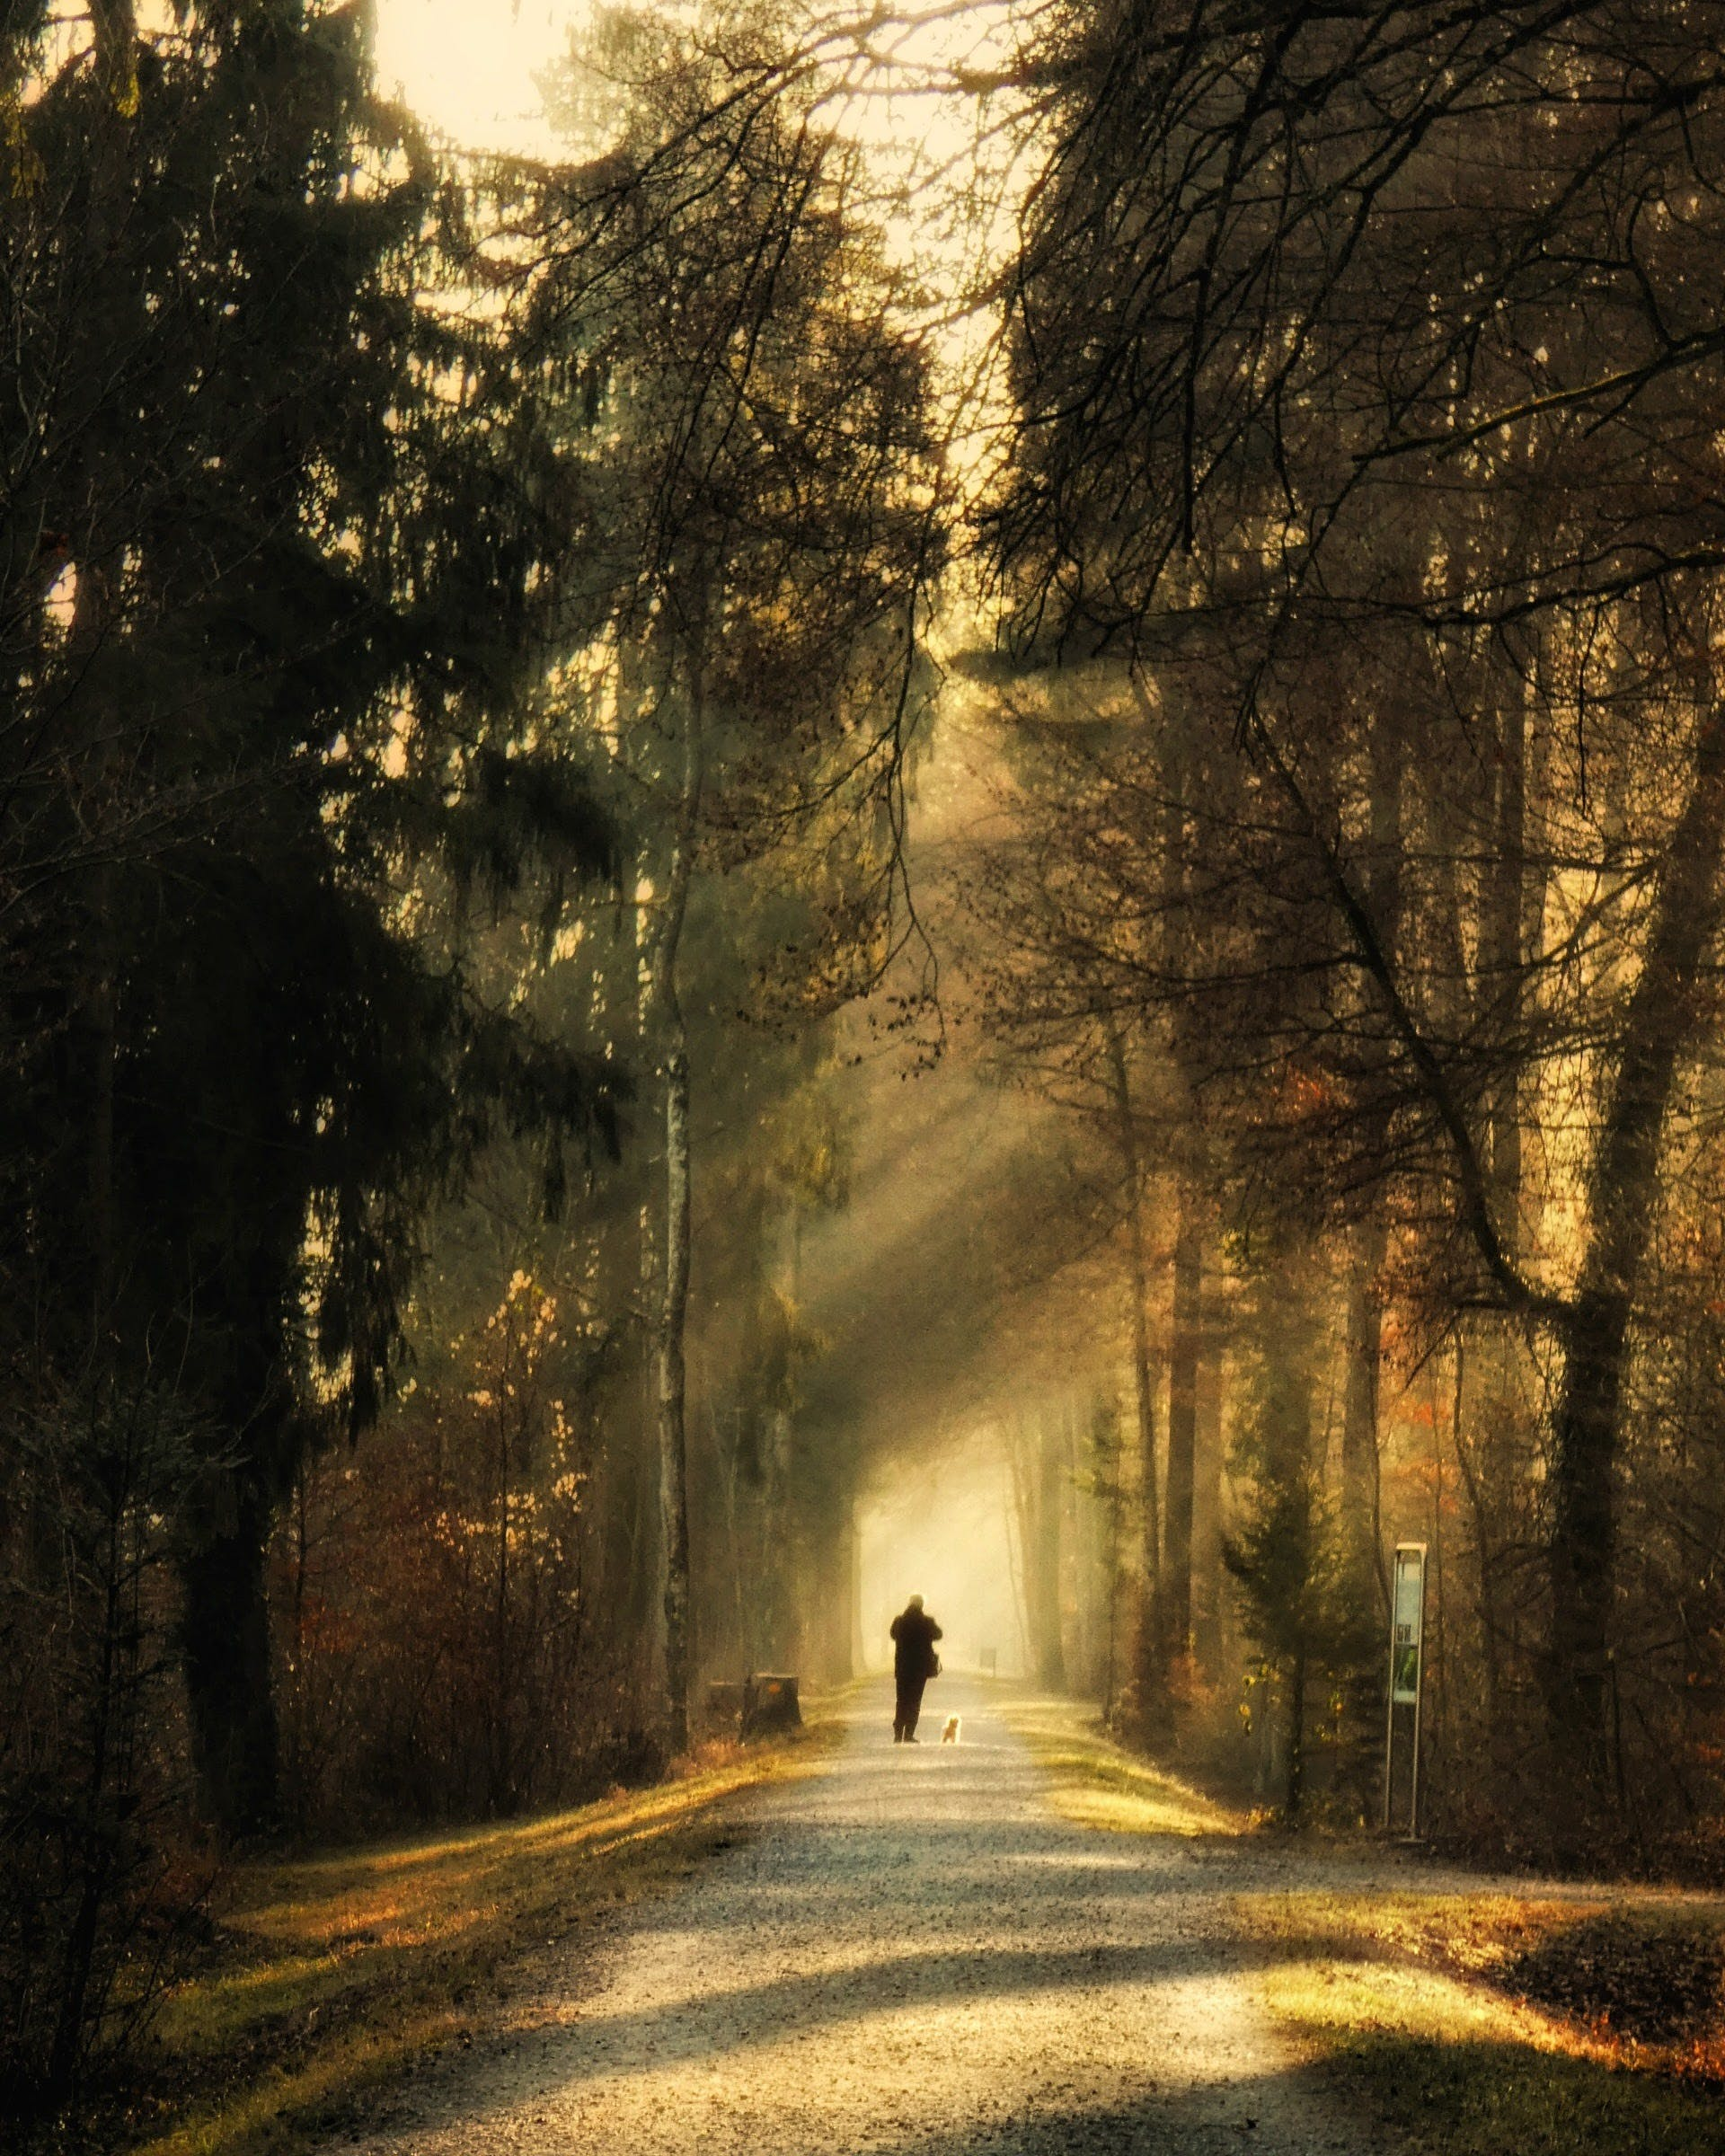 Person Standing on Pathway Surrounded by Trees